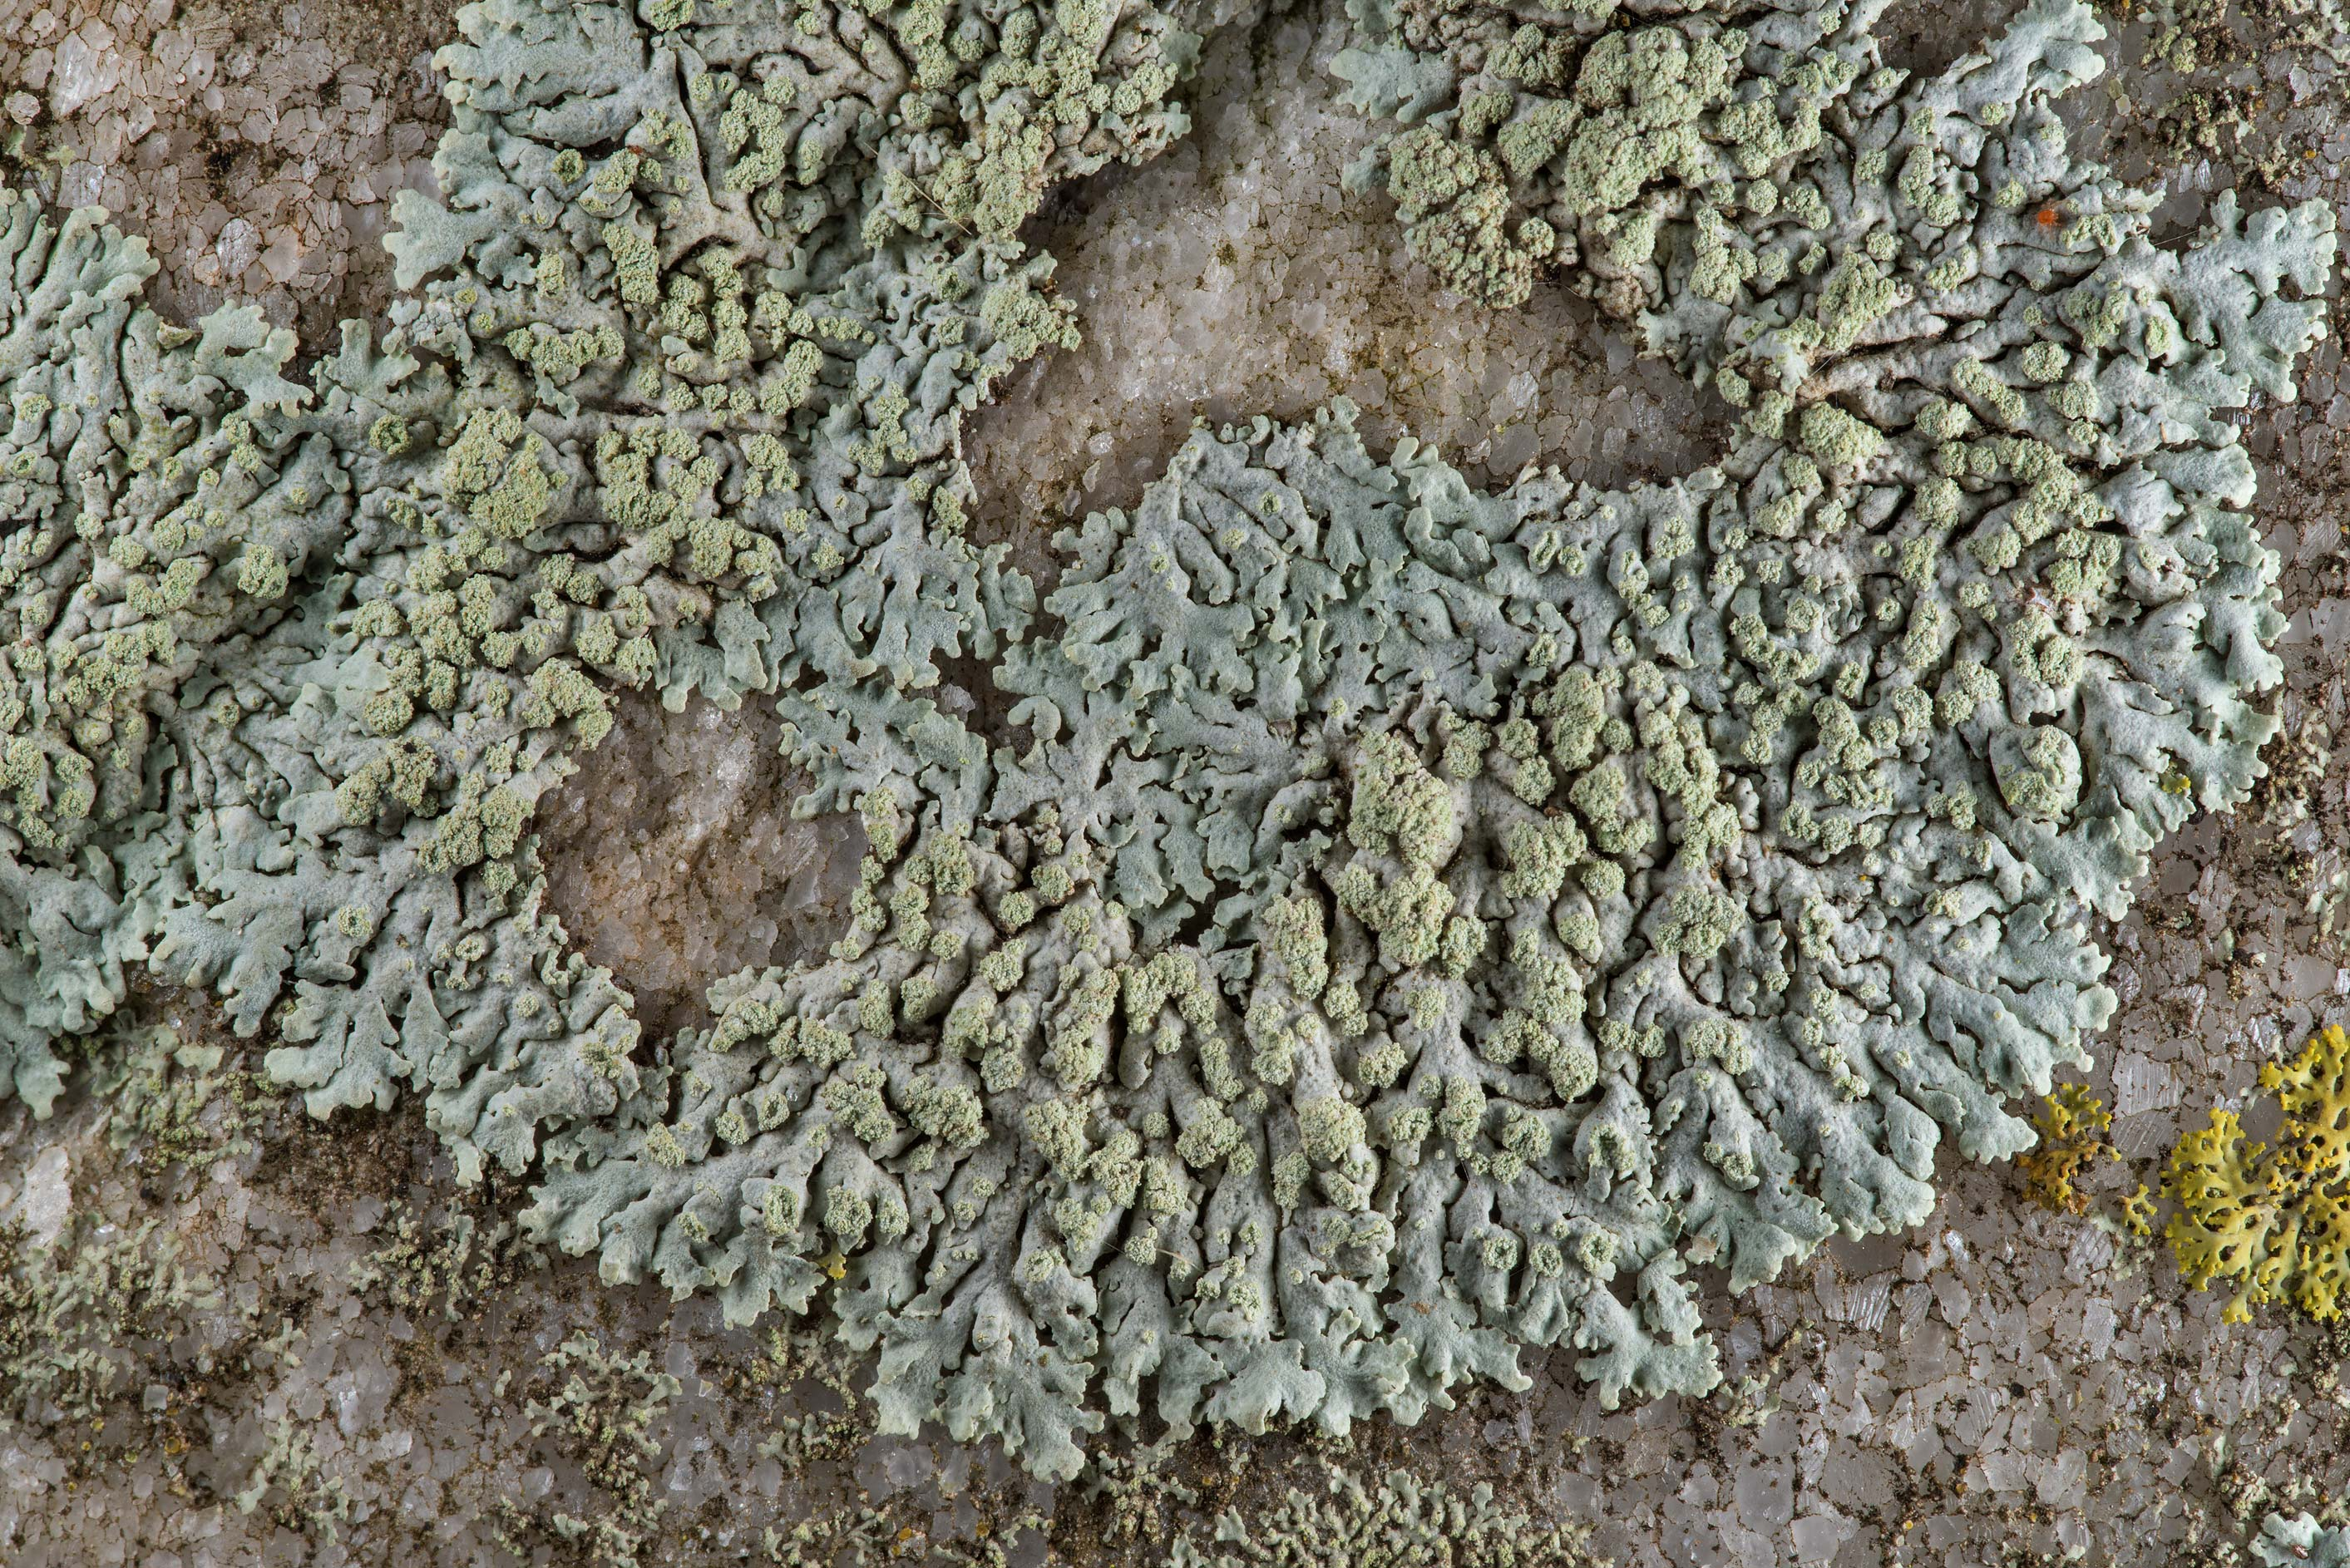 Rosette lichen (Physcia) with soredia on a tomb...Cemetery near Huntsville, Texas